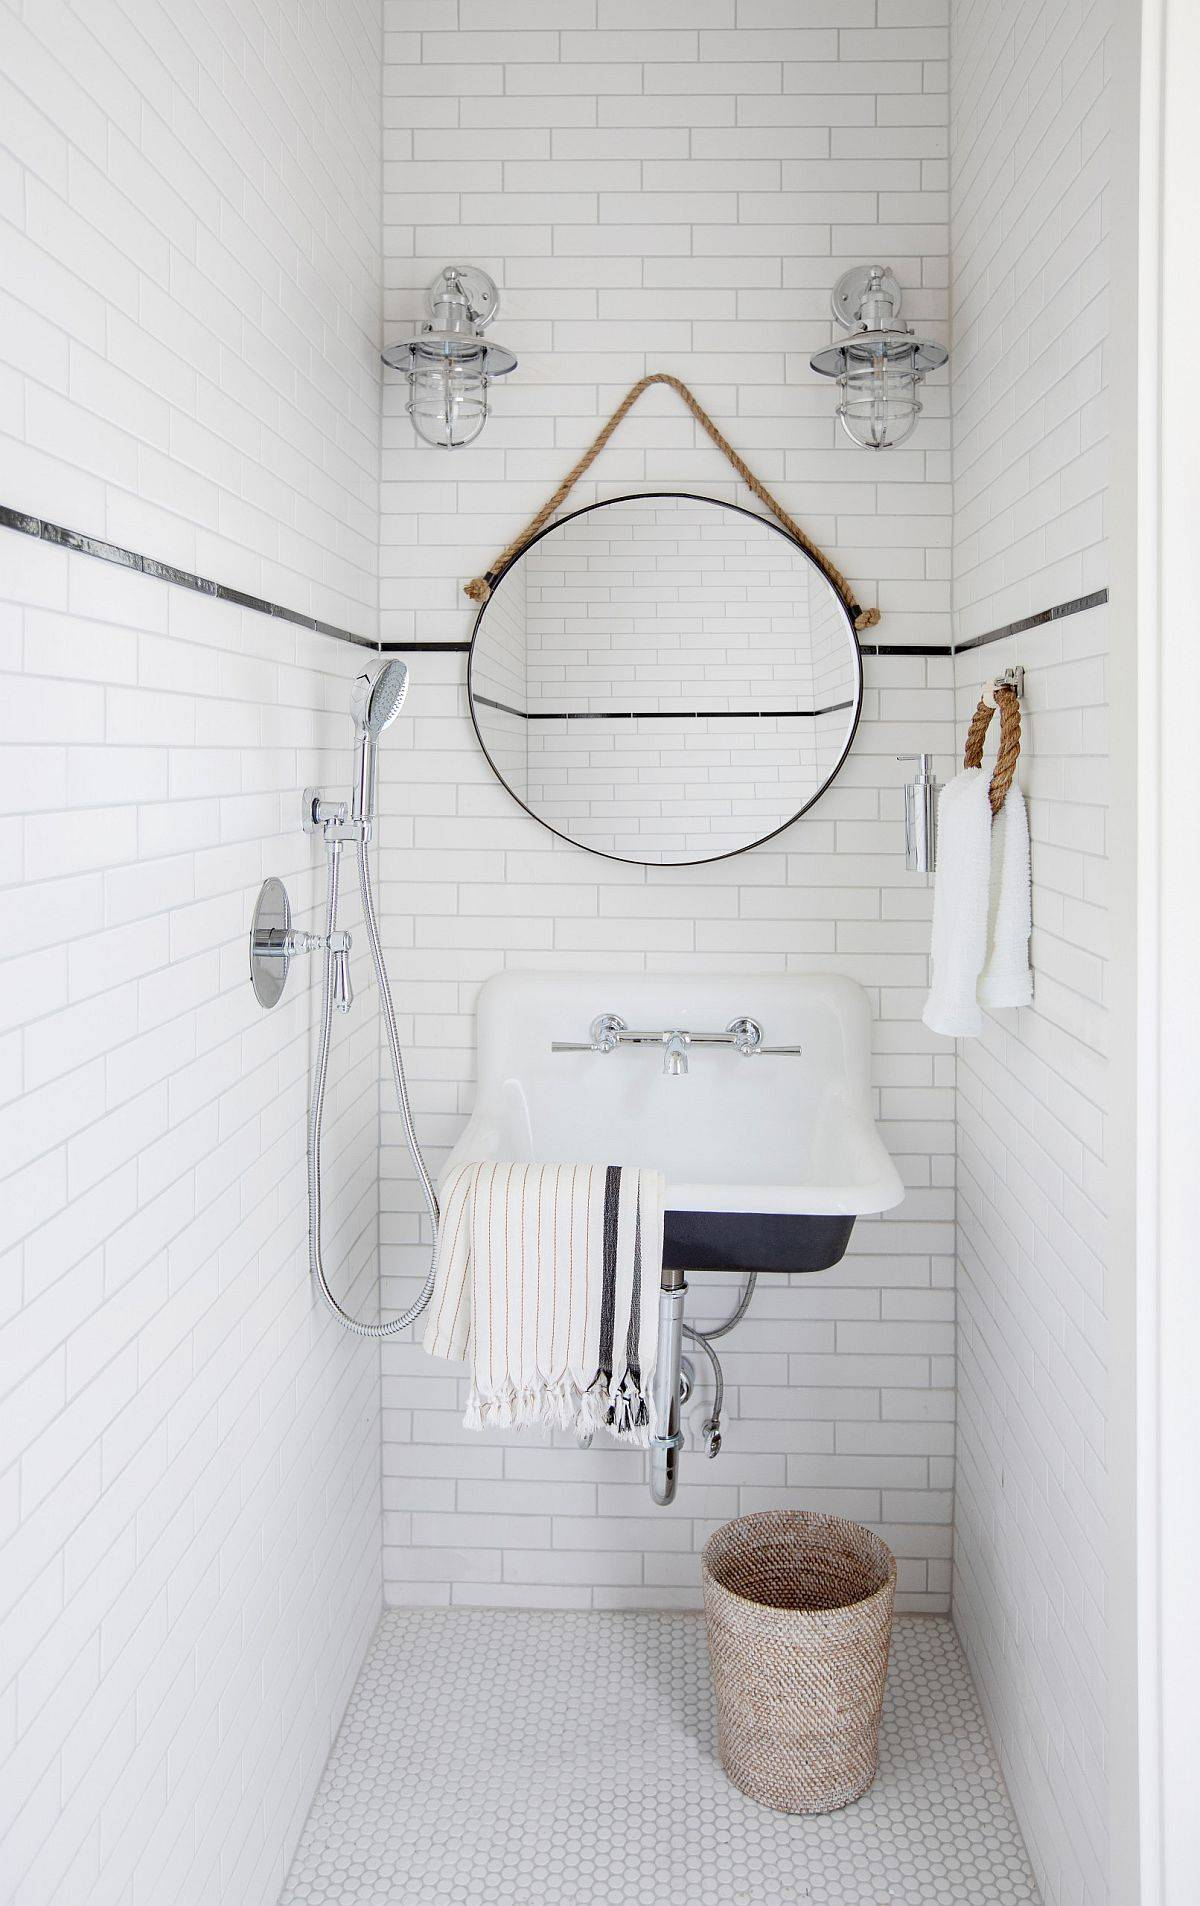 Use black in the all-white bathroom to define features and add visual interest